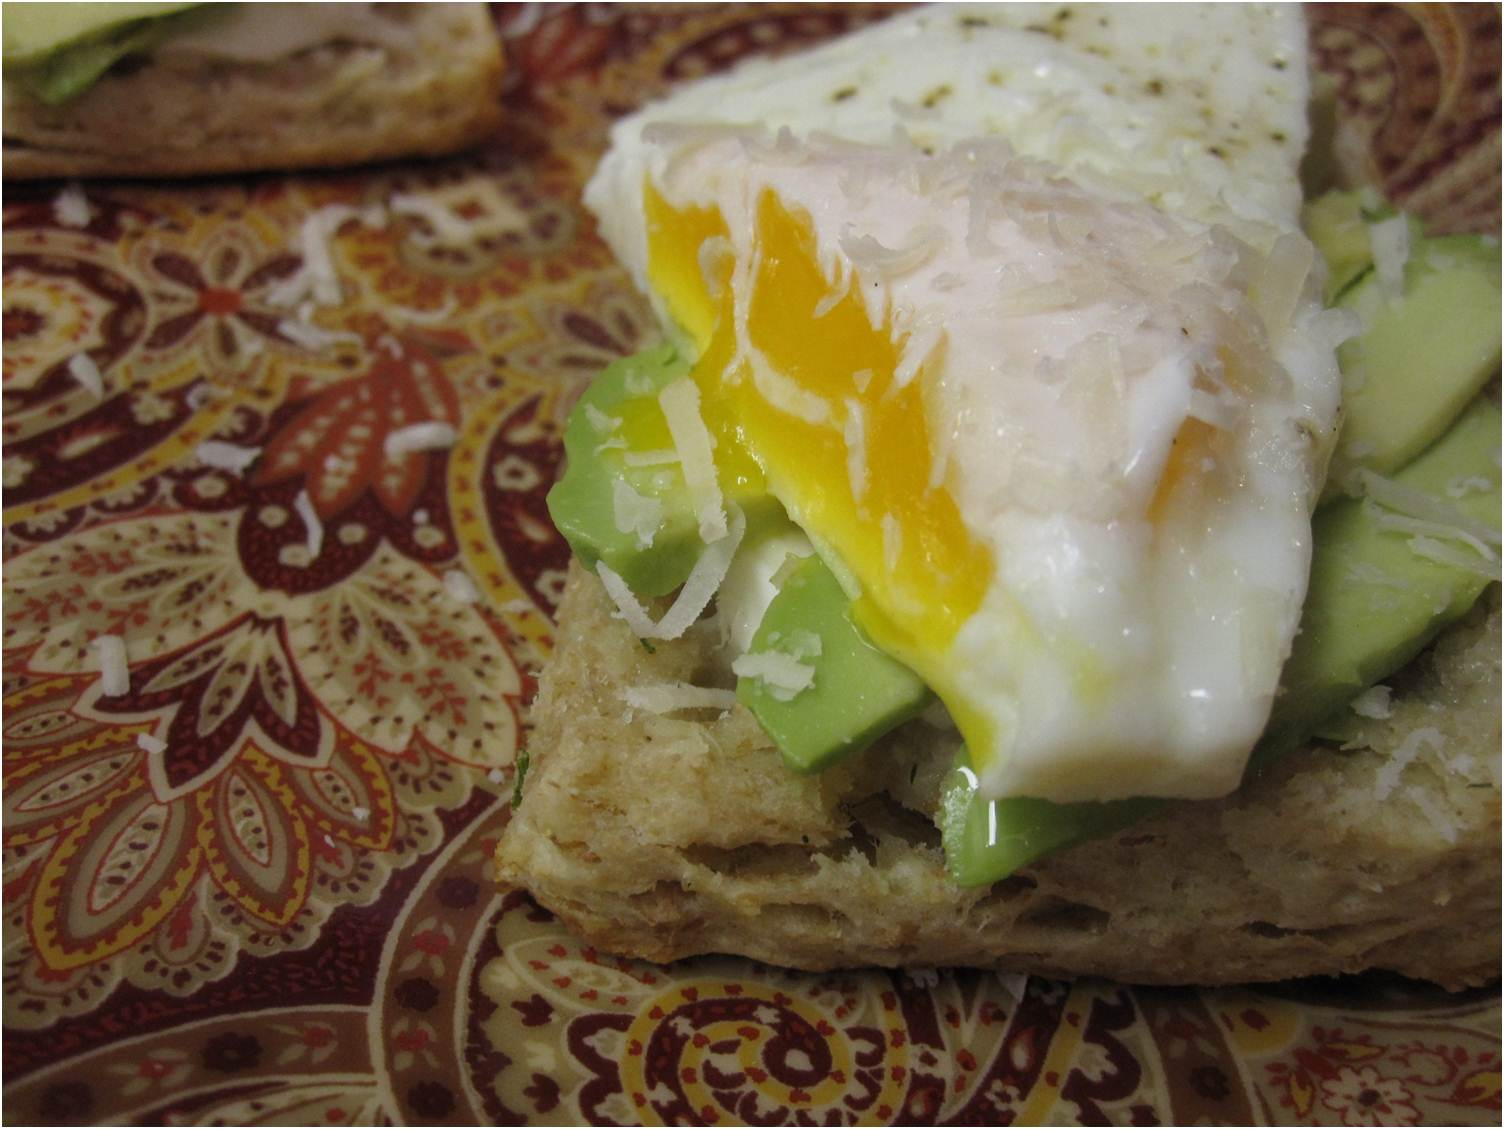 ... biology: Green onion, dill and yogurt biscuits with eggs and avocado